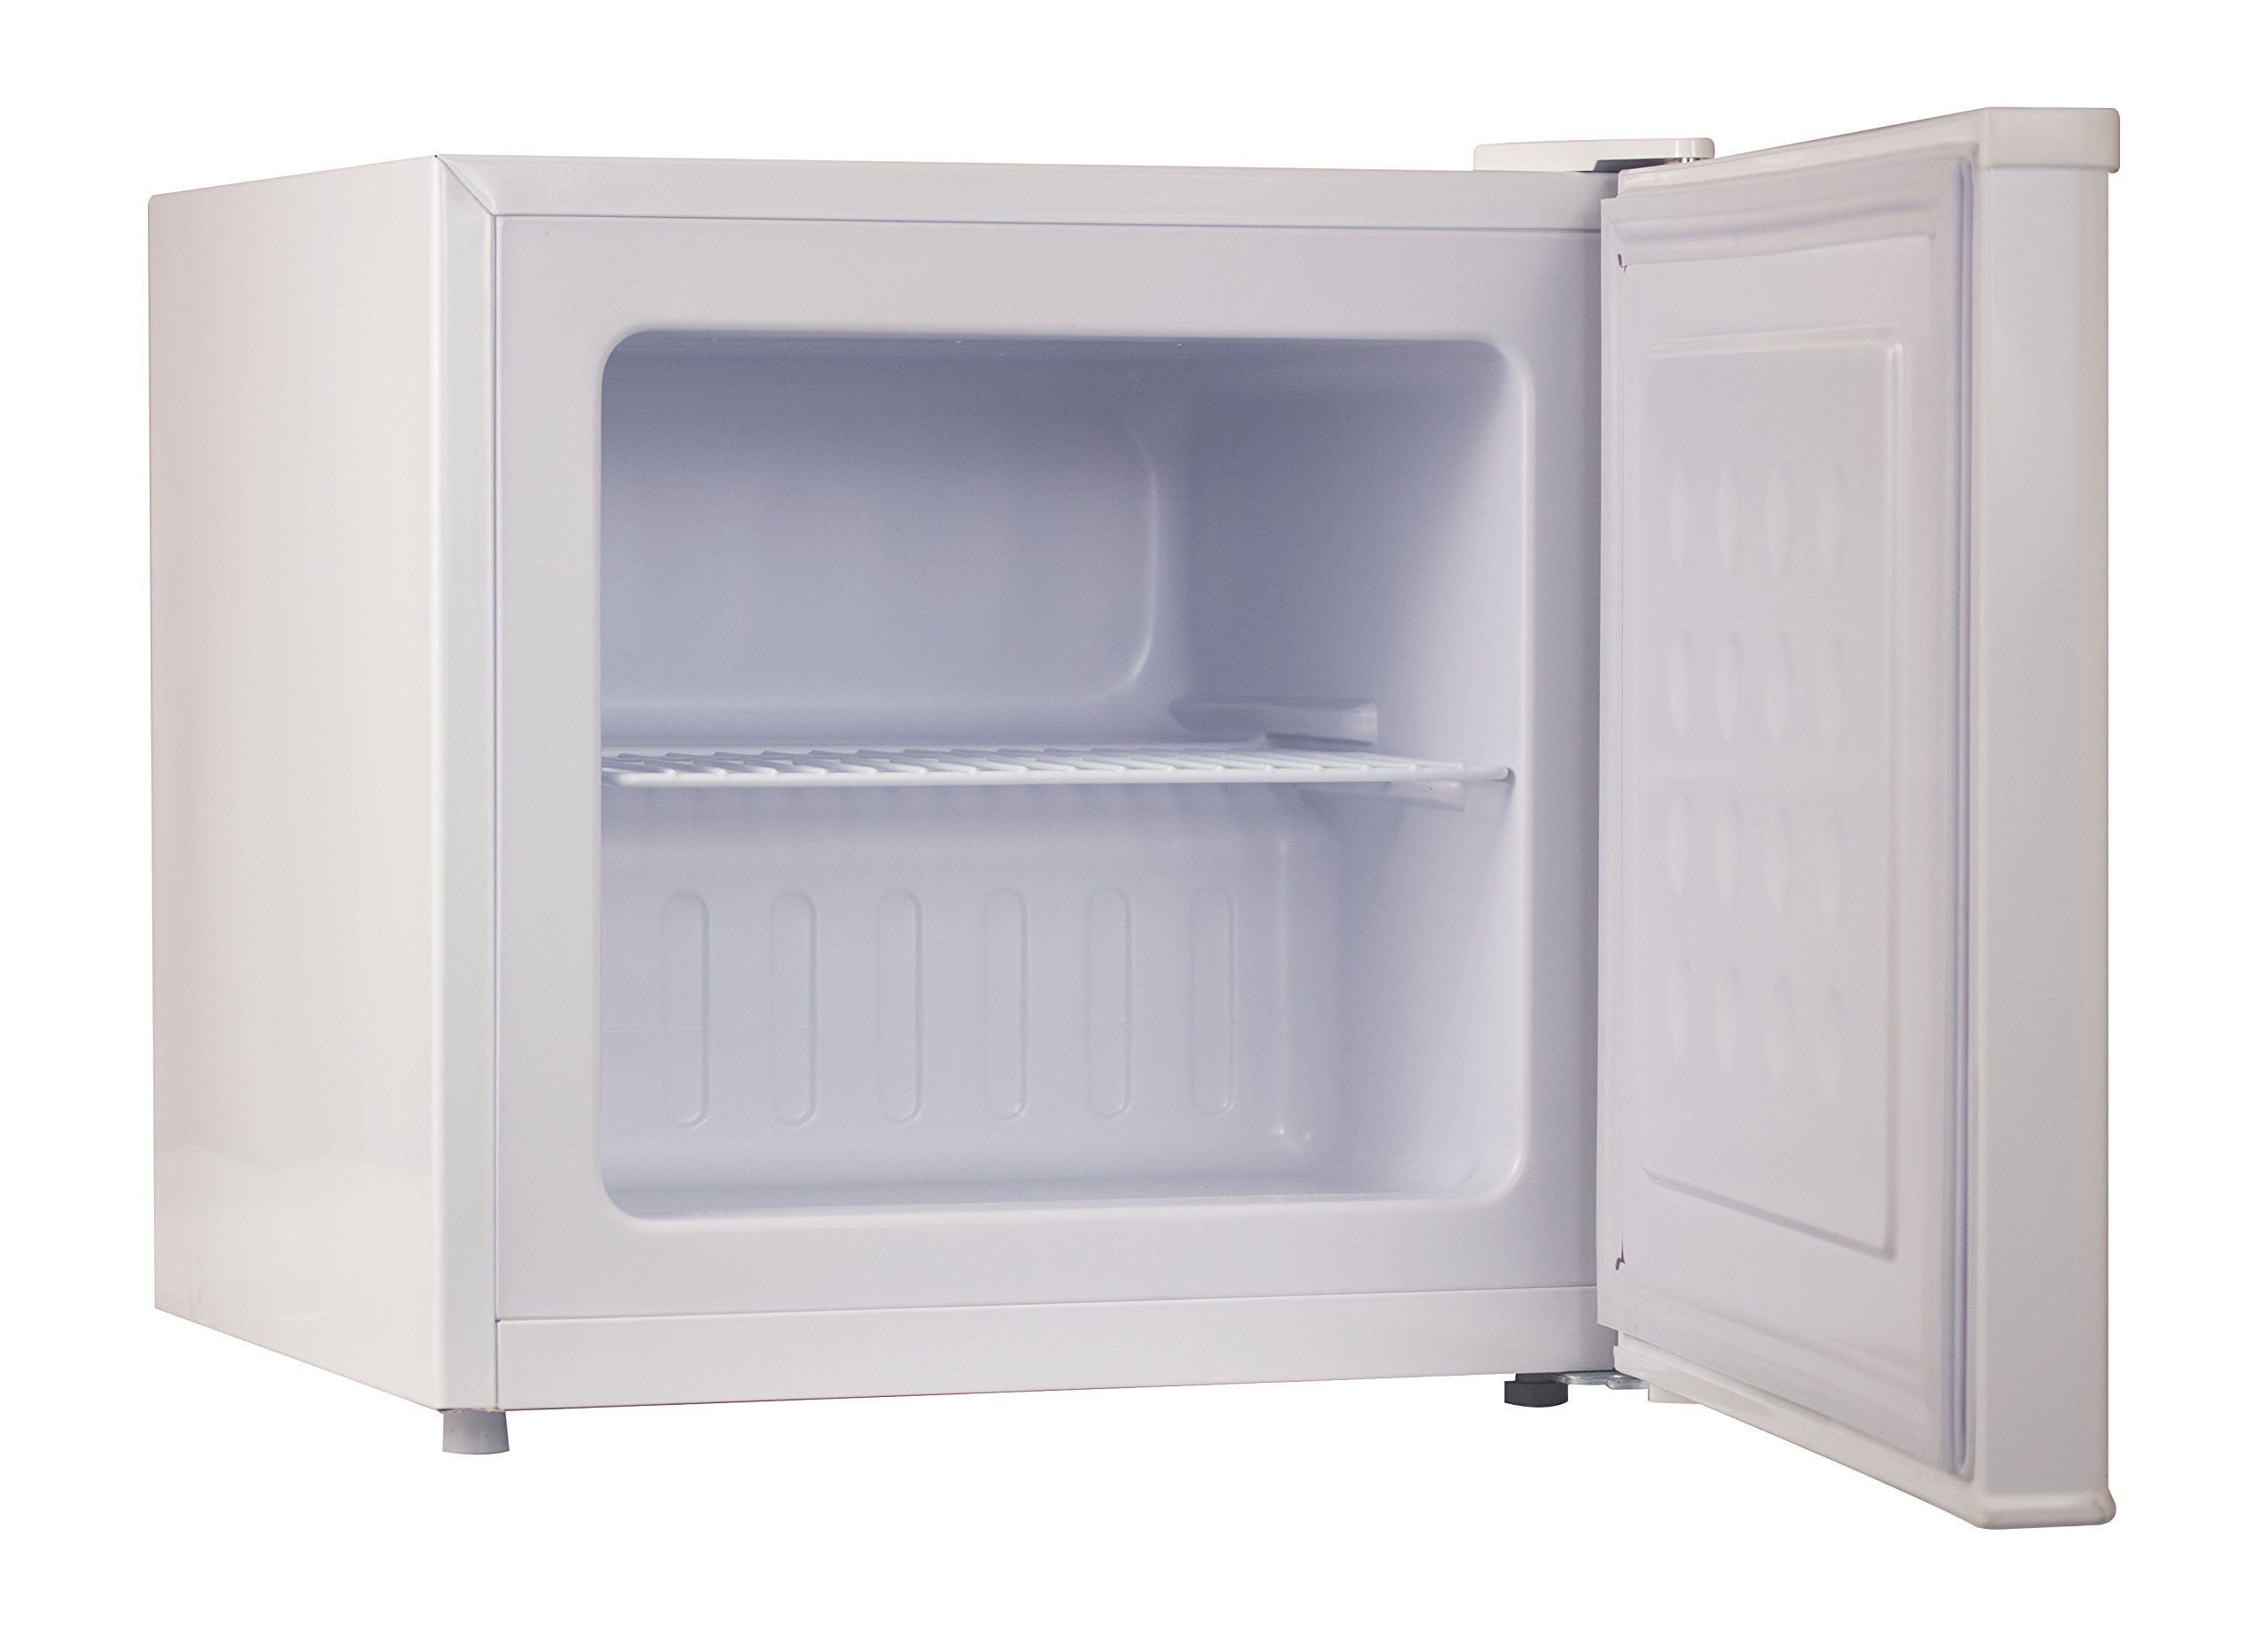 Commercial Cool CCUK12W 1.2 Cu. Ft. Upright Freezer with Adjustable Thermostat Control and R600a Refrigerant, White by Commercial Cool (Image #5)